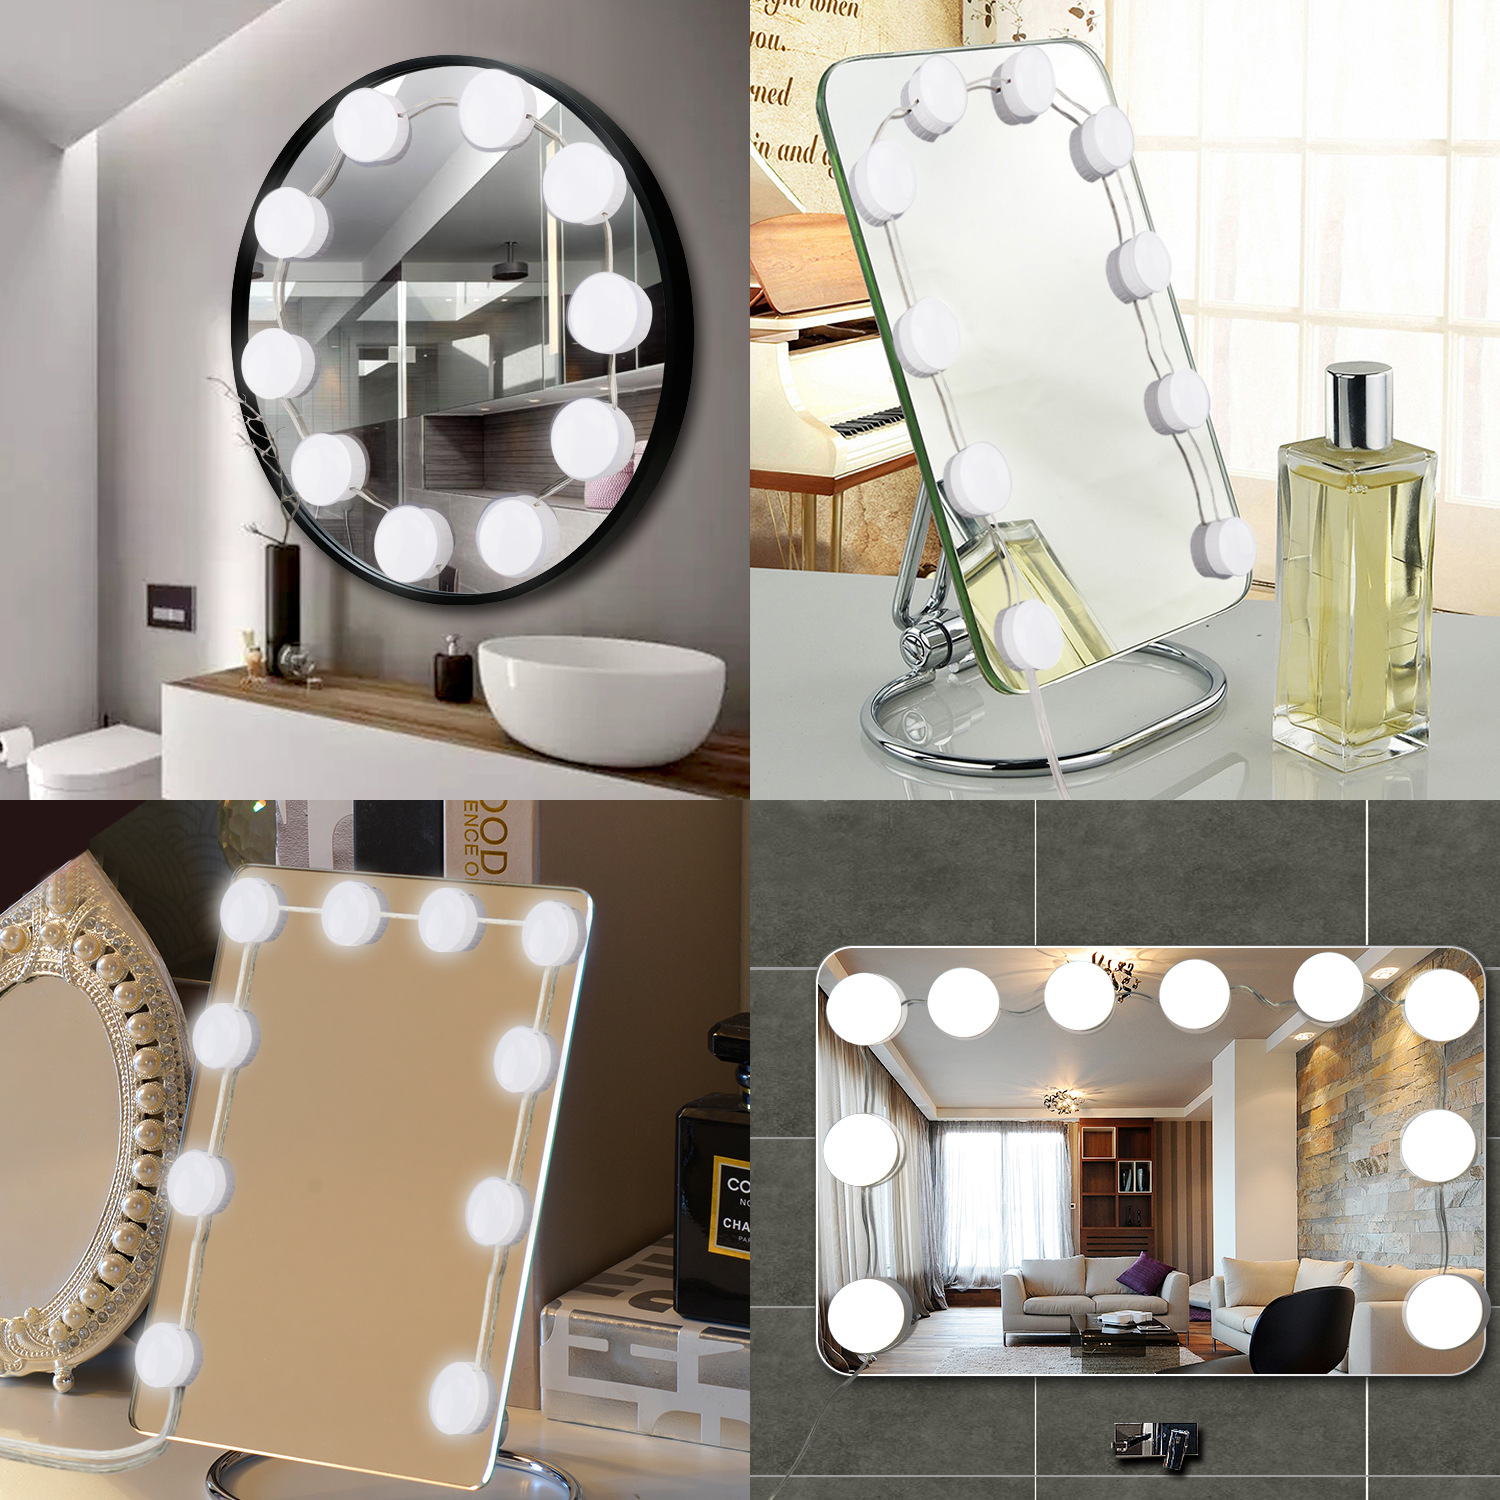 TSV Hollywood Style LED Vanity Mirror Lights Kit with Dimmable Light Bulbs, Lighting Fixture Strip for Makeup Vanity Table Set in Dressing Room (Mirror Not Include)